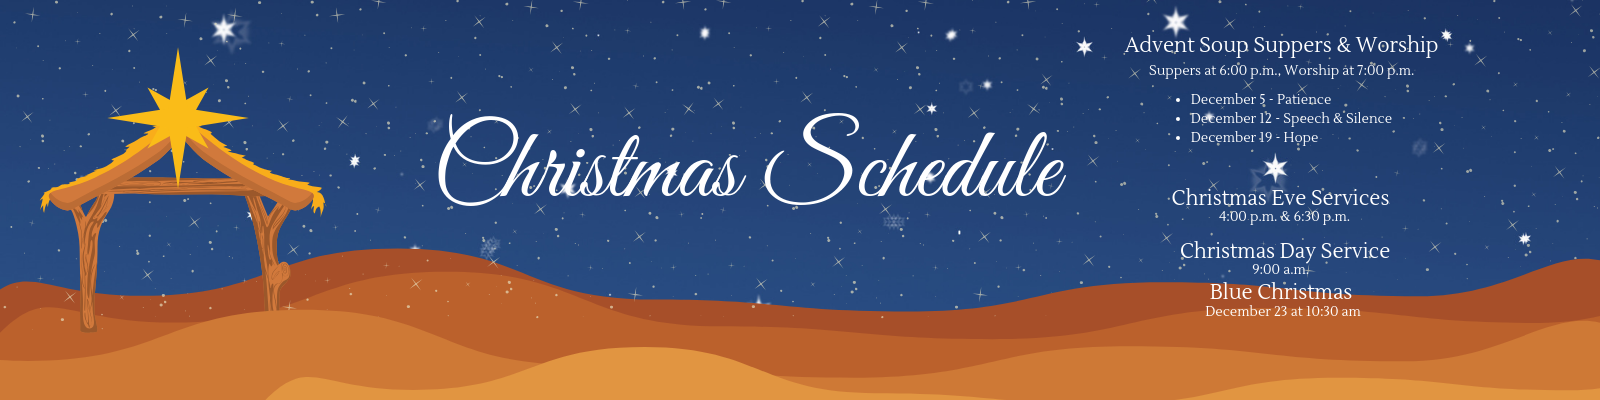 Join us this holiday season as we provide Advent worship and soup suppers, and prepare for Christmas at St John Lutheran in Ely, IA.